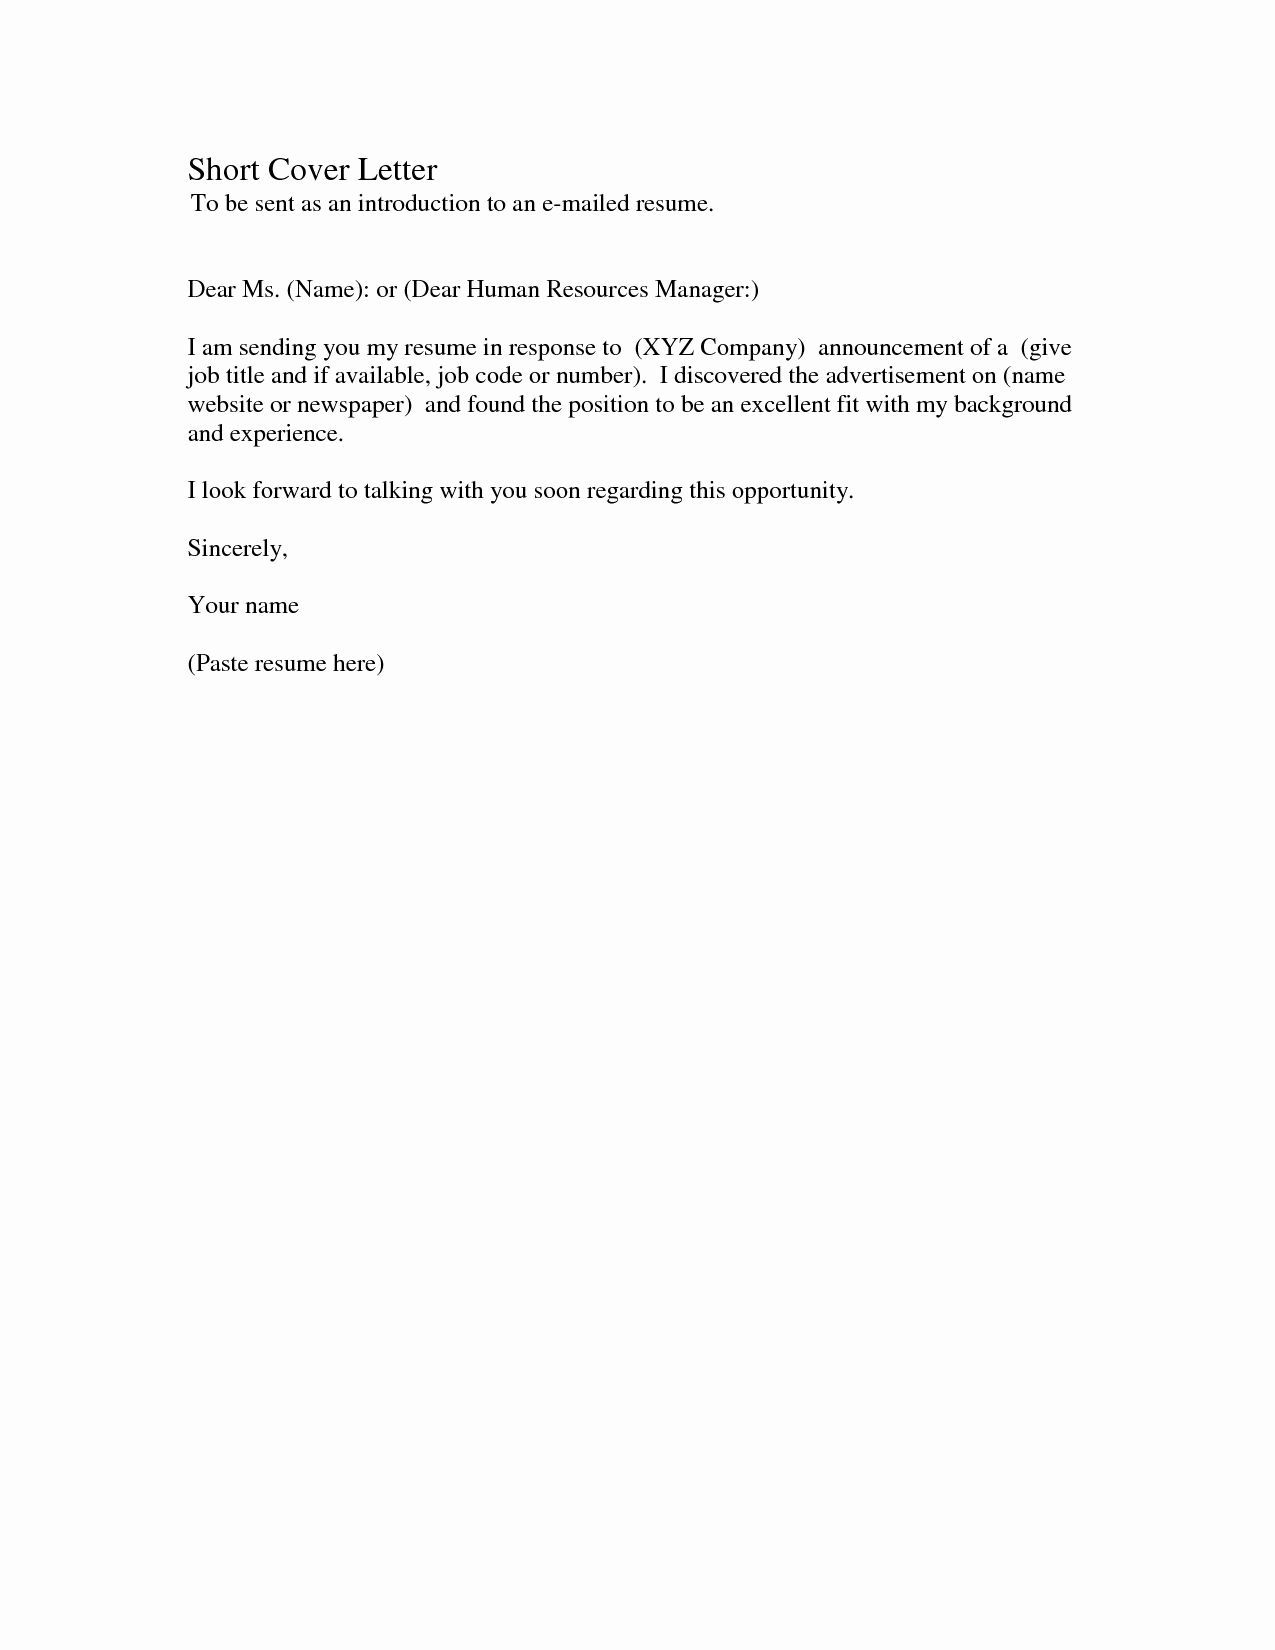 Short Cover Letter Example Lovely Short Cover Letter